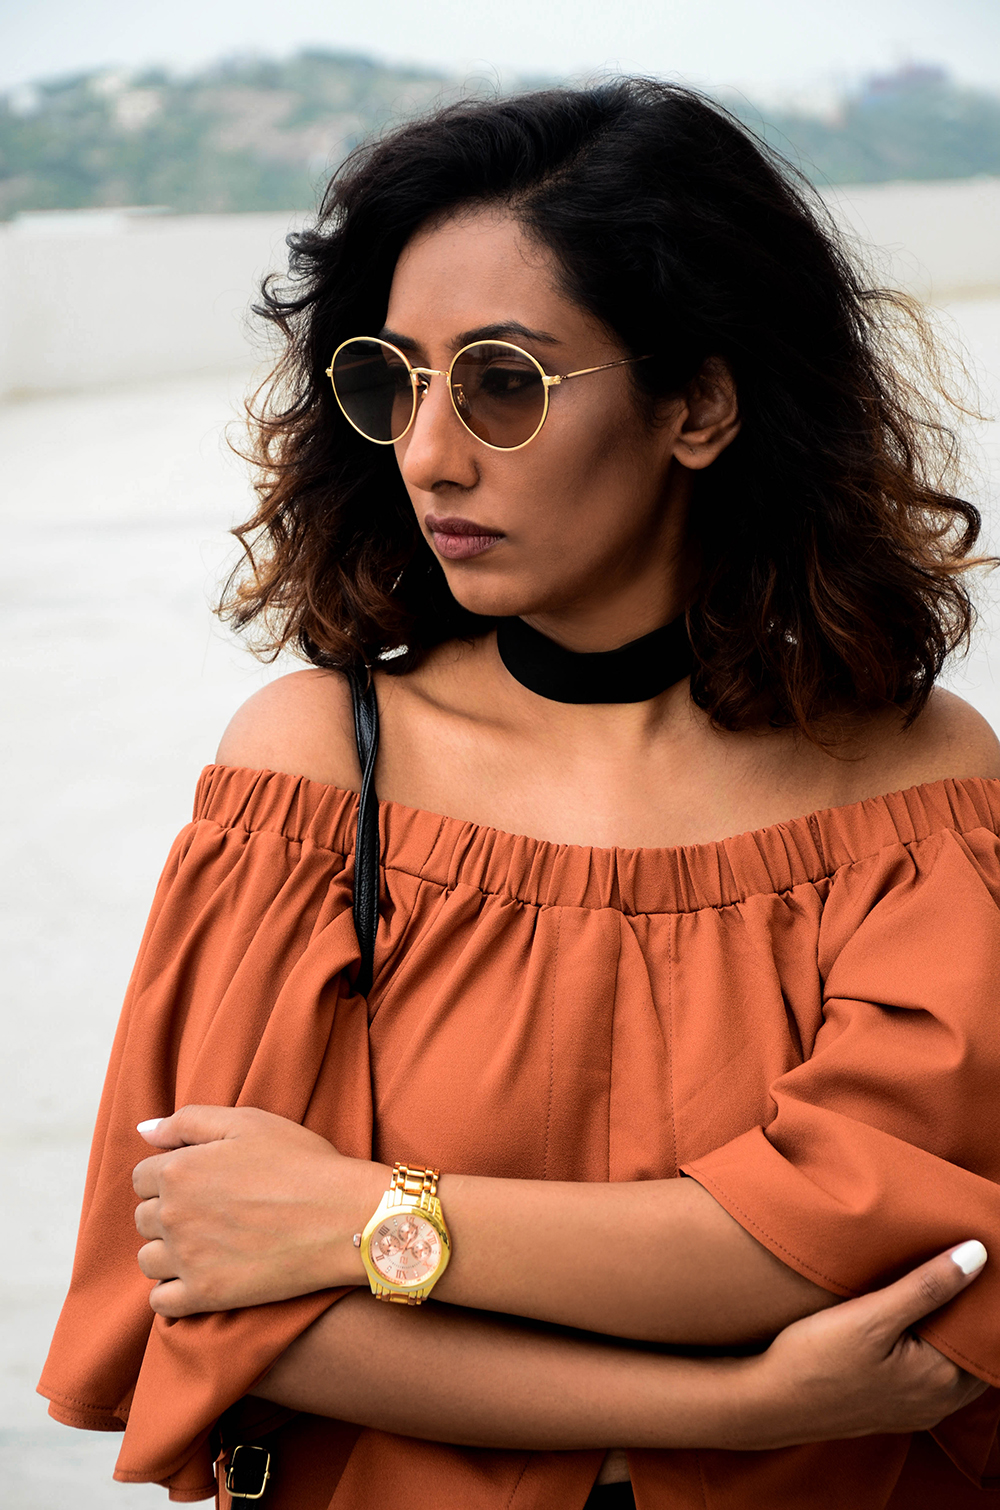 Lookbook ; Coffee Top ; brown ; Streetstyle ; Outfit ; Retro Sunglasses ; fashion photography ; Romwe ; H&M ; street fashion ; strong ; Dark ; fall fashion; Black pants ; Gold accessories ; Naznin ; Naznin Suhaer ; dusky; model ; indian blogger ; hyderabad fashion bloggers ; hyderabad bloggers ; hyderabad fashion blogger ; I Dress for the Applause ;